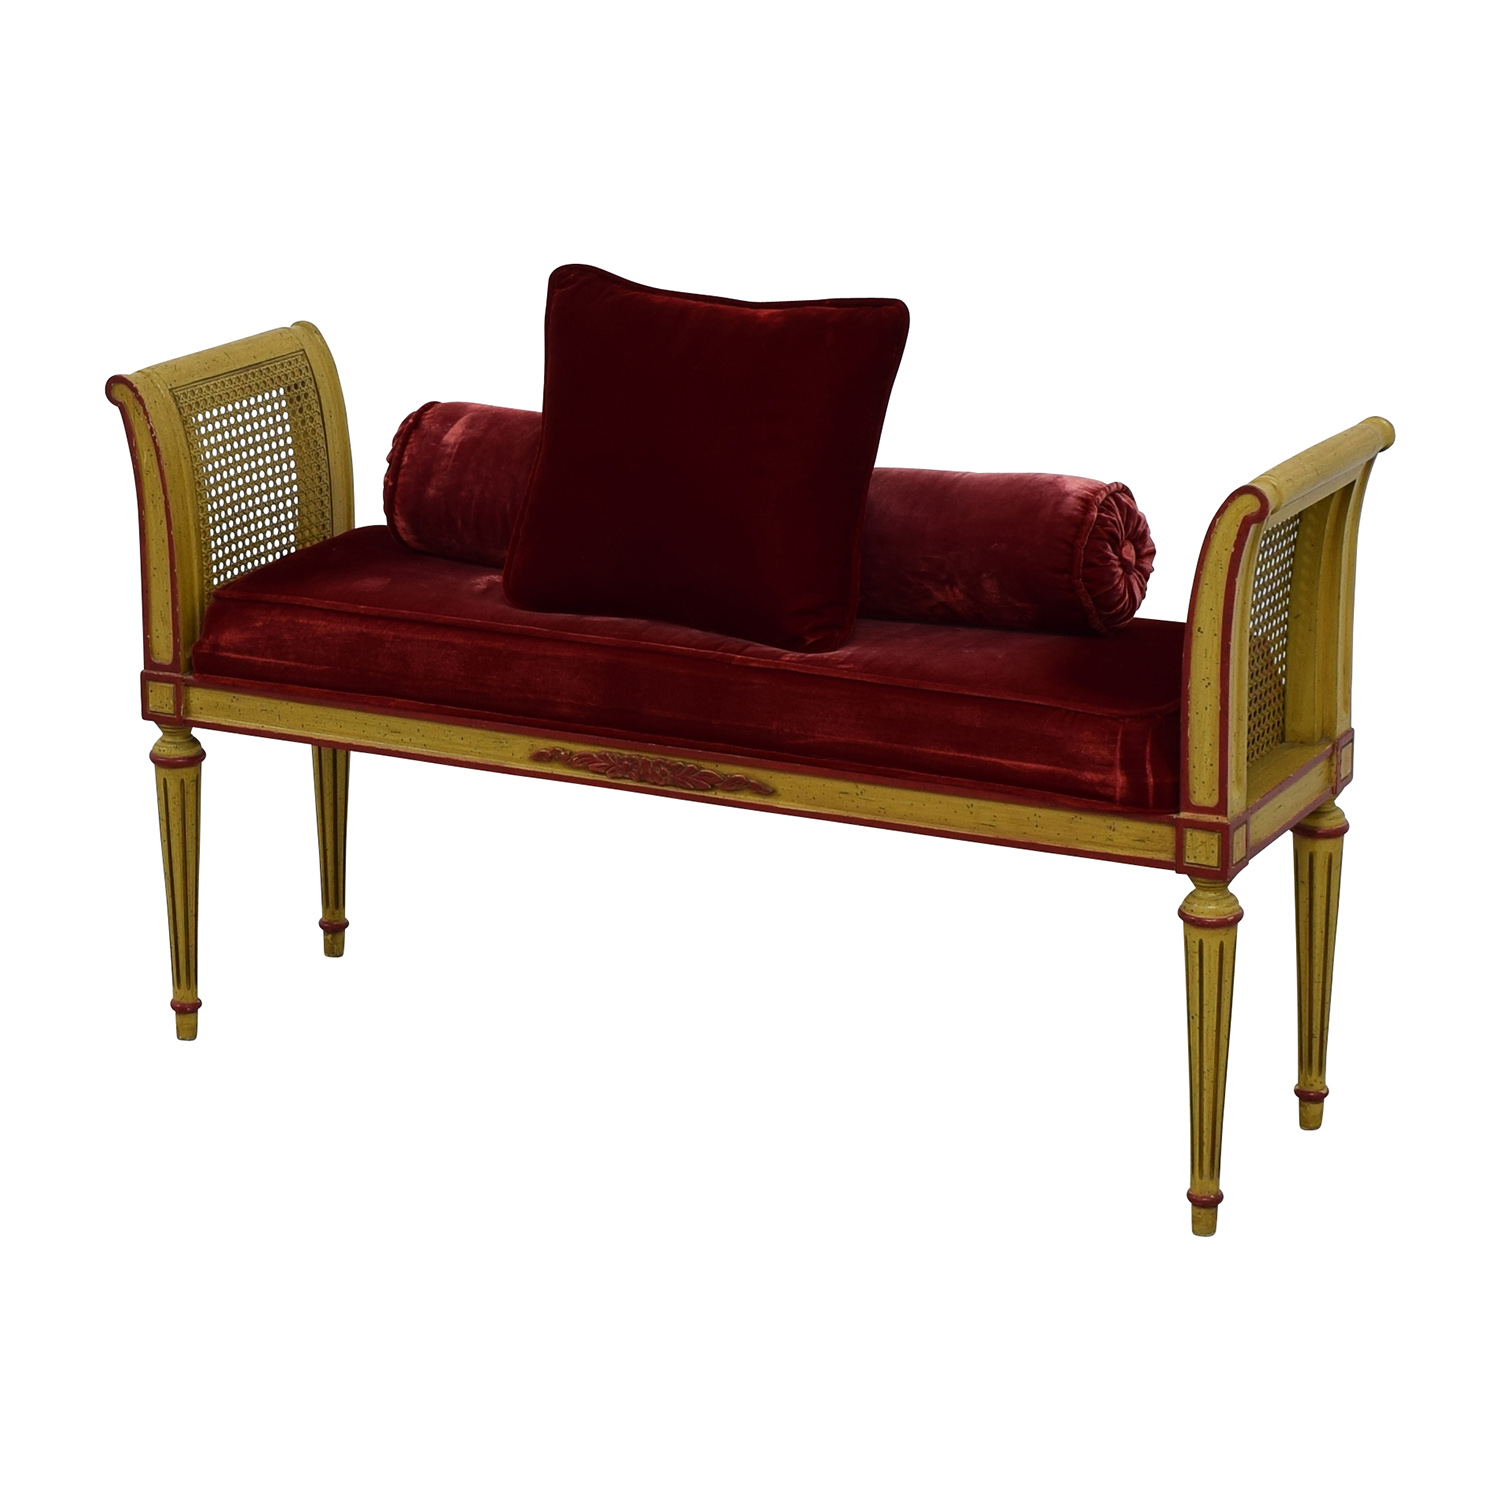 78 Off Antique Bench With Red Velvet Cushion And Pillow